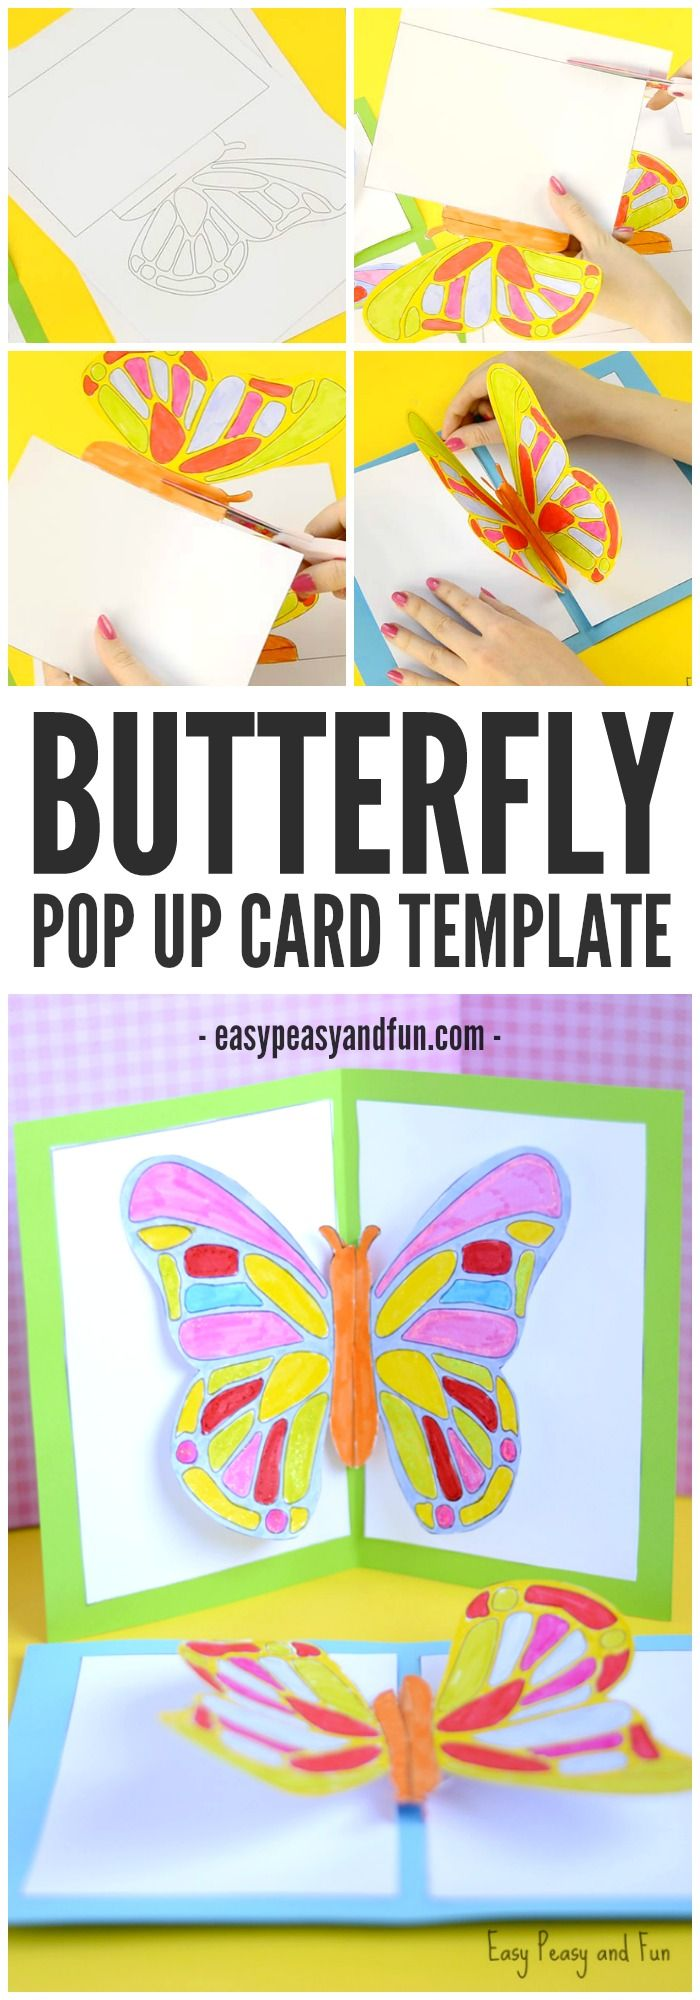 Diy Butterfly Pop Up Card With A Template Pop Up Card Templates Insect Crafts Diy Butterfly